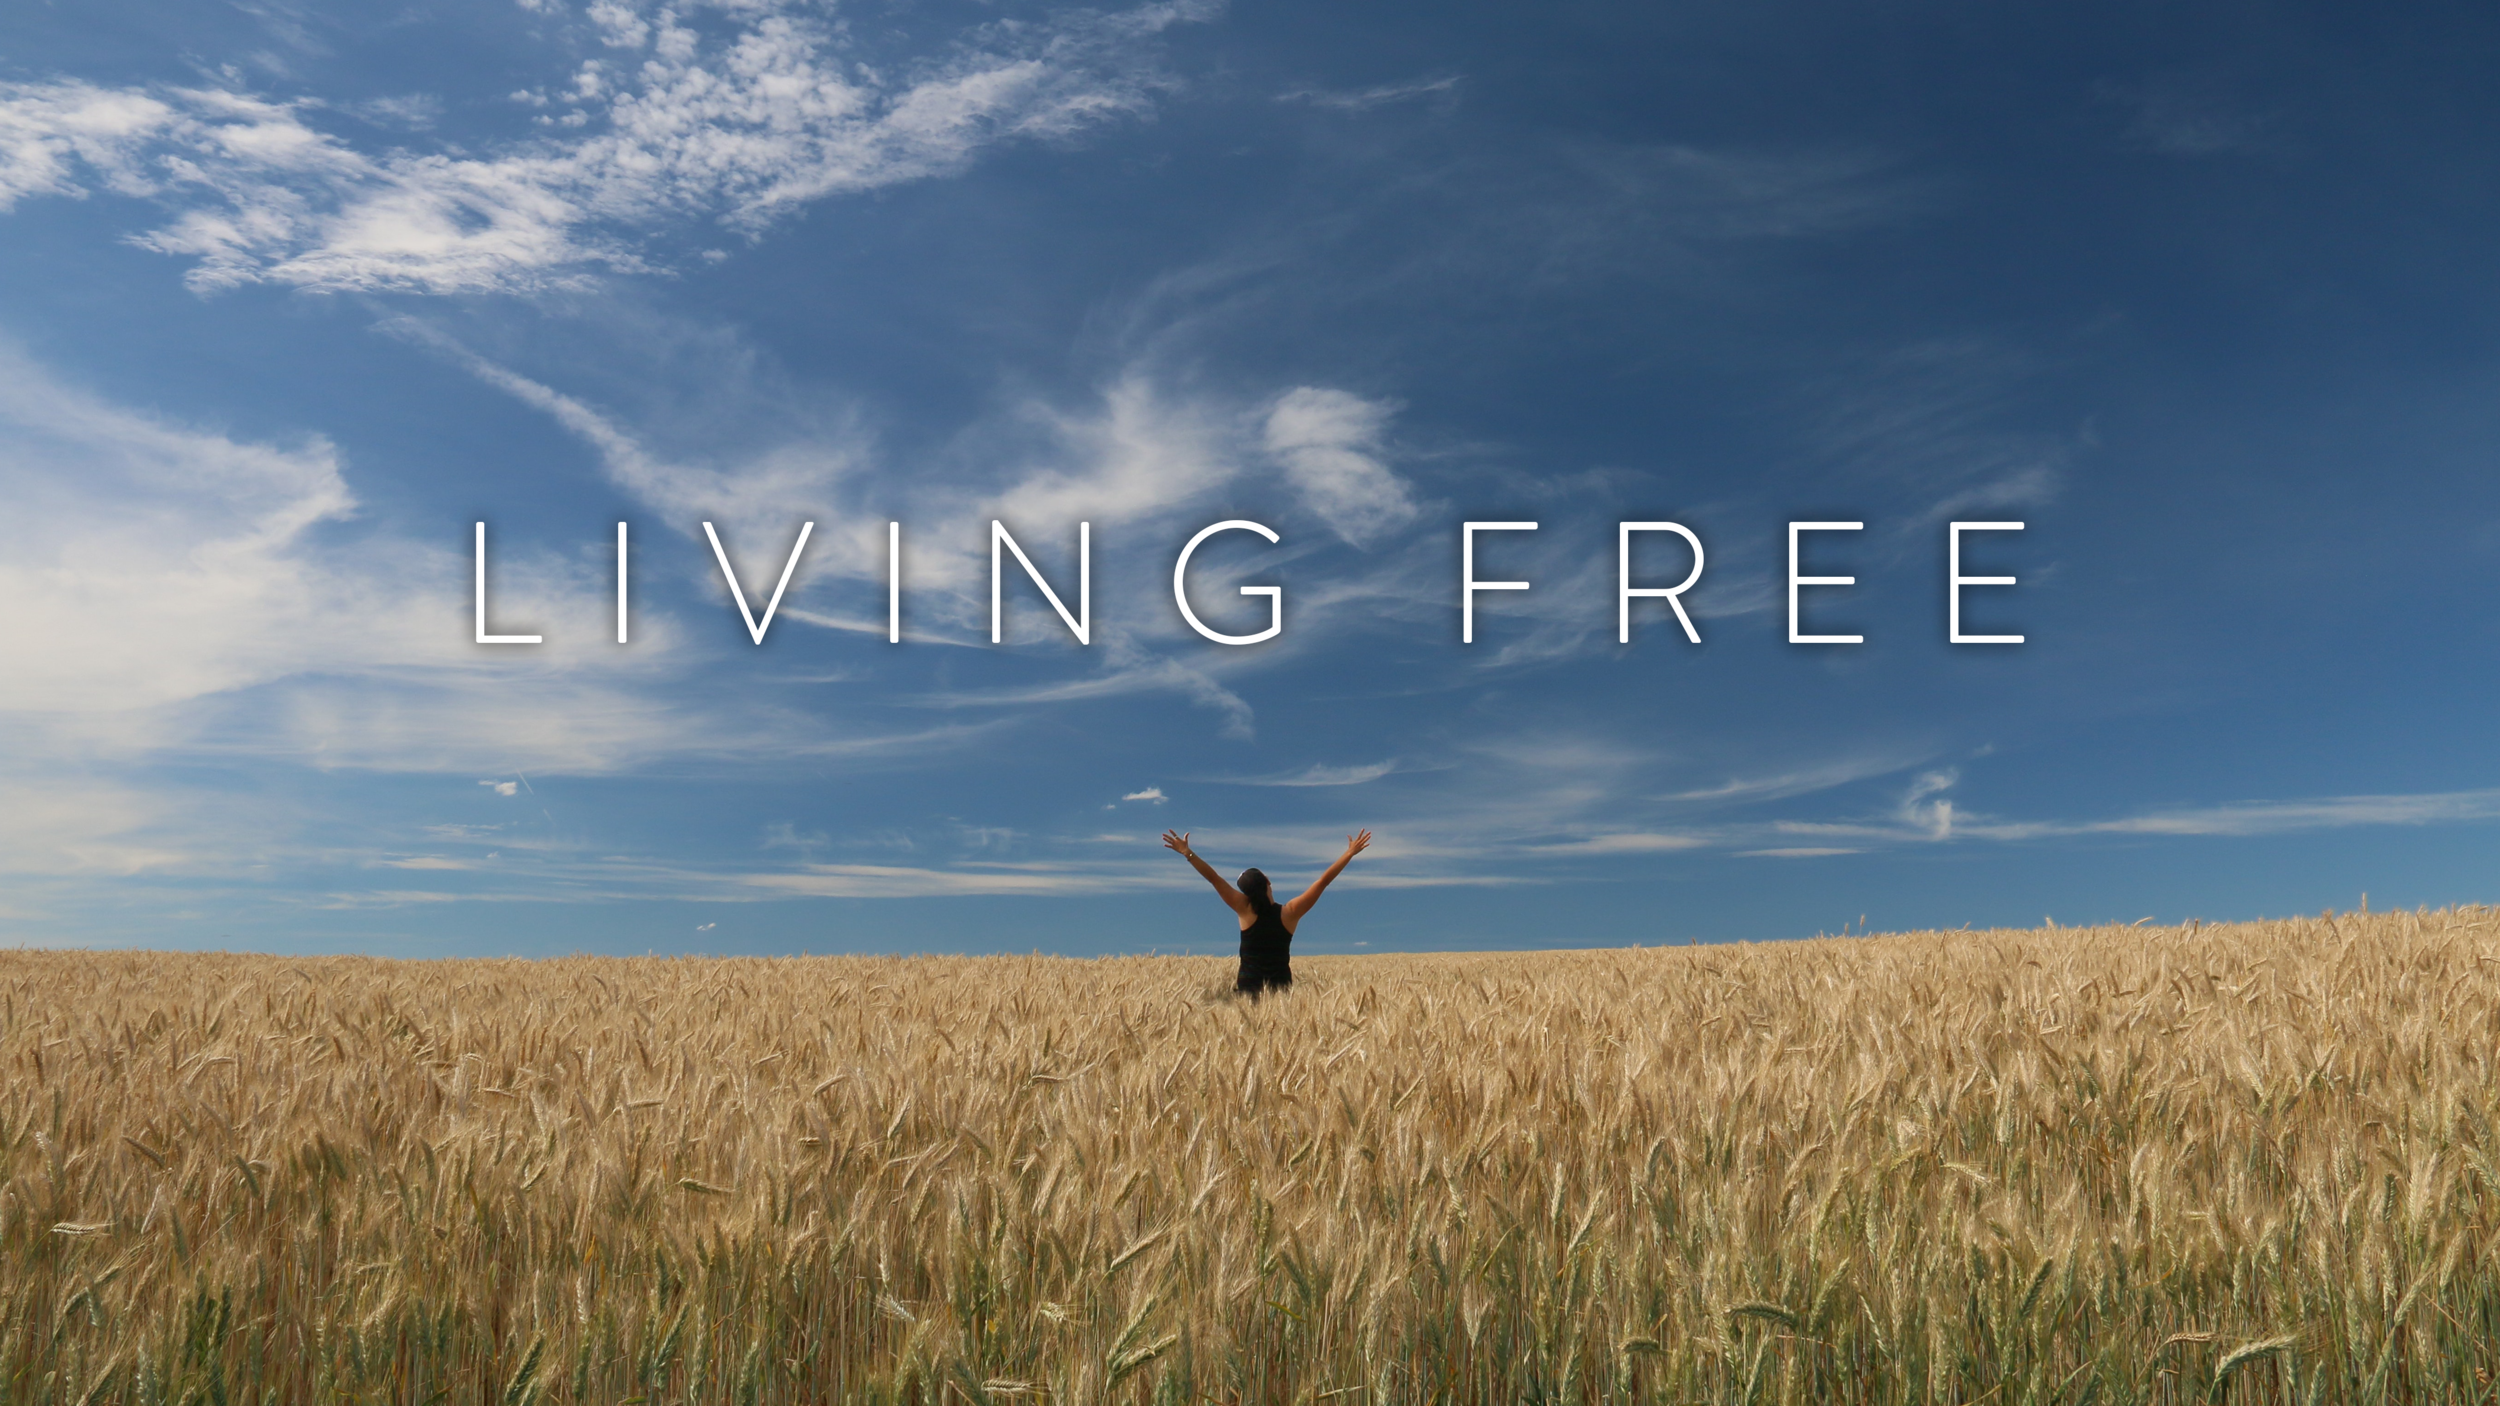 Living Free - 1. Jesus is out Liberator2. Resolving Unresolved Wounds3. Removing False Labels4. Spiritual Warfare5. Overcoming Sin6. Tending Your Heart